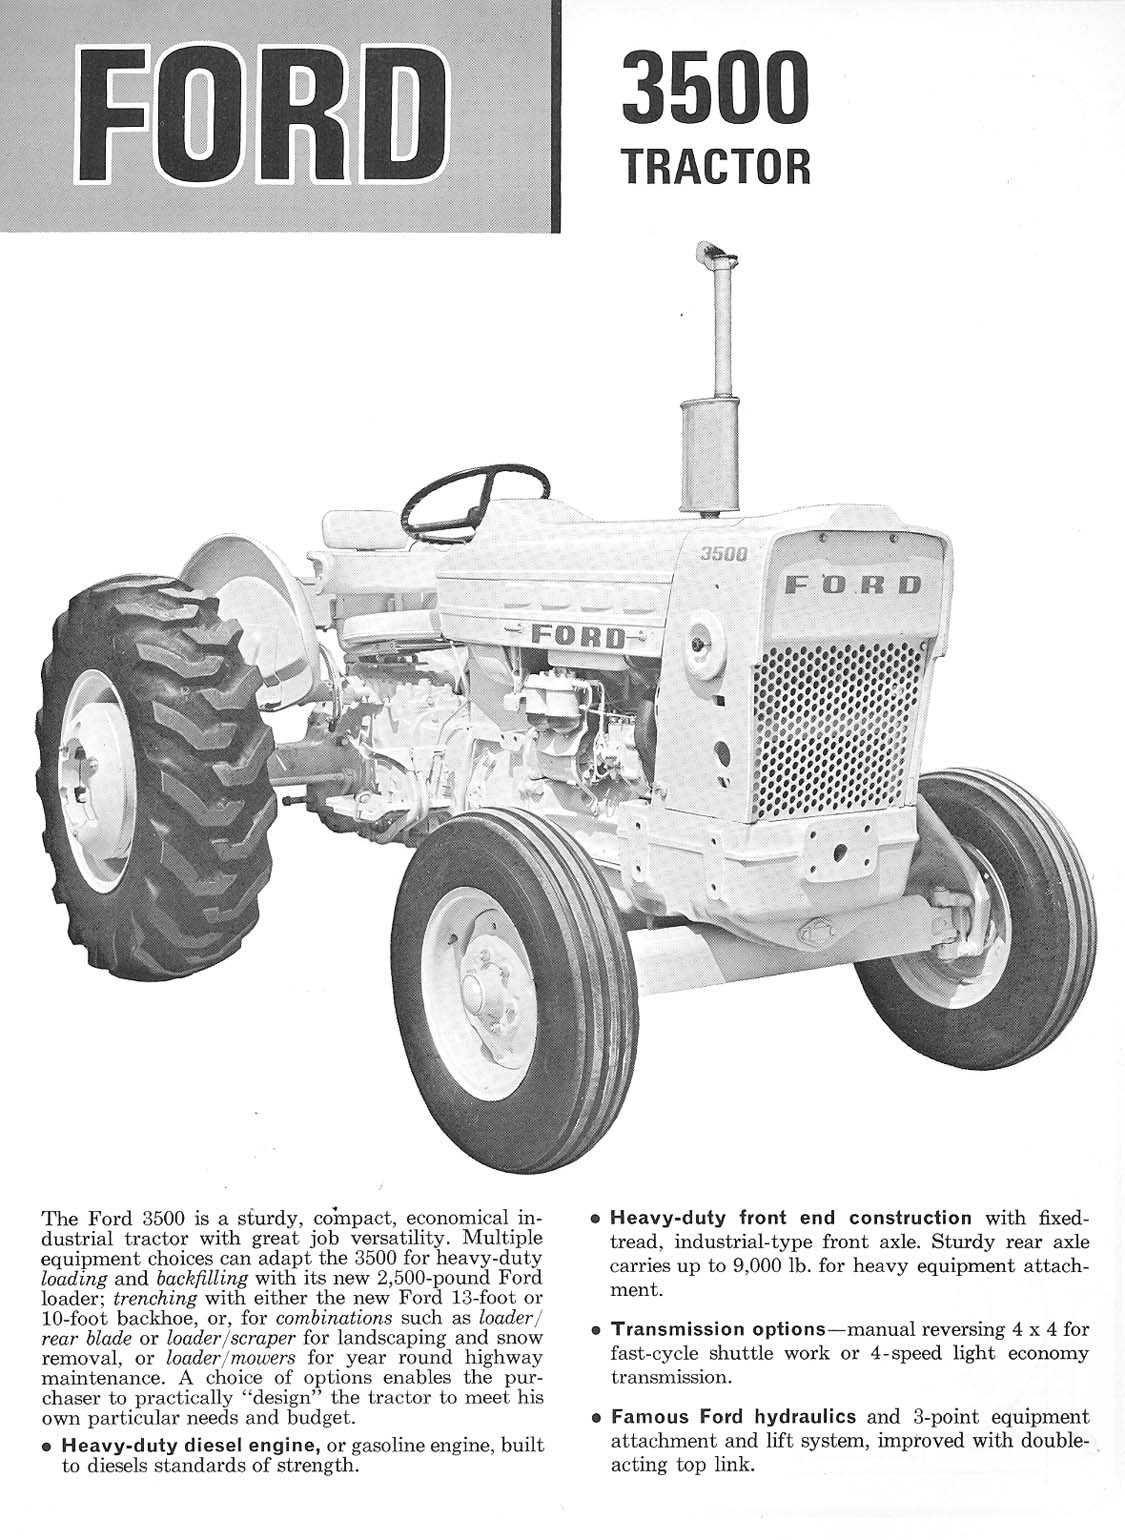 Ford 3500 Tractor : Re ford stage tractor ad brochure